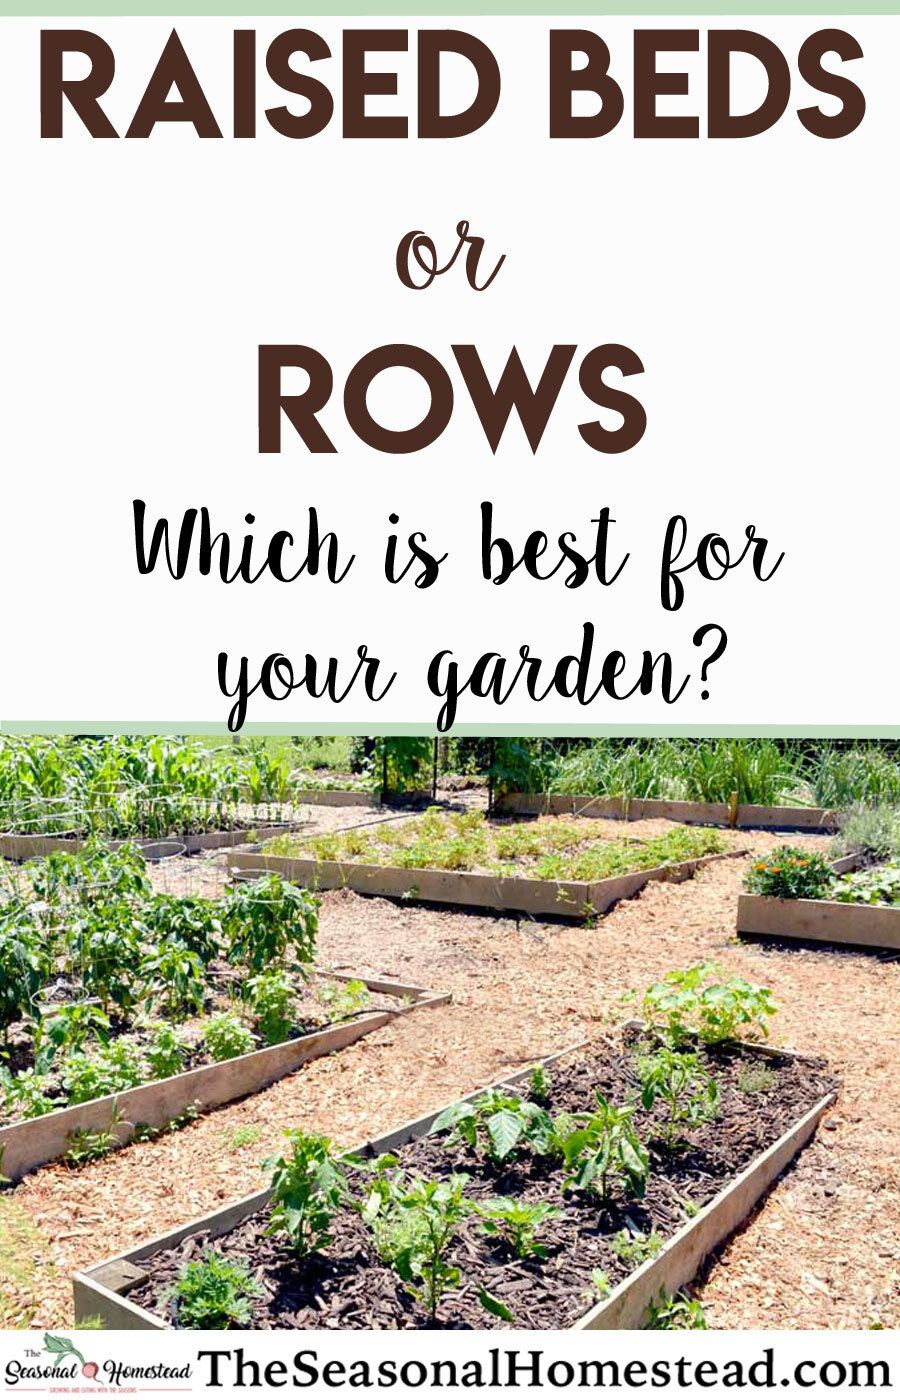 b0fb43056054206907c4d23dc980ae82 - Why Do Gardeners Use Raised Beds